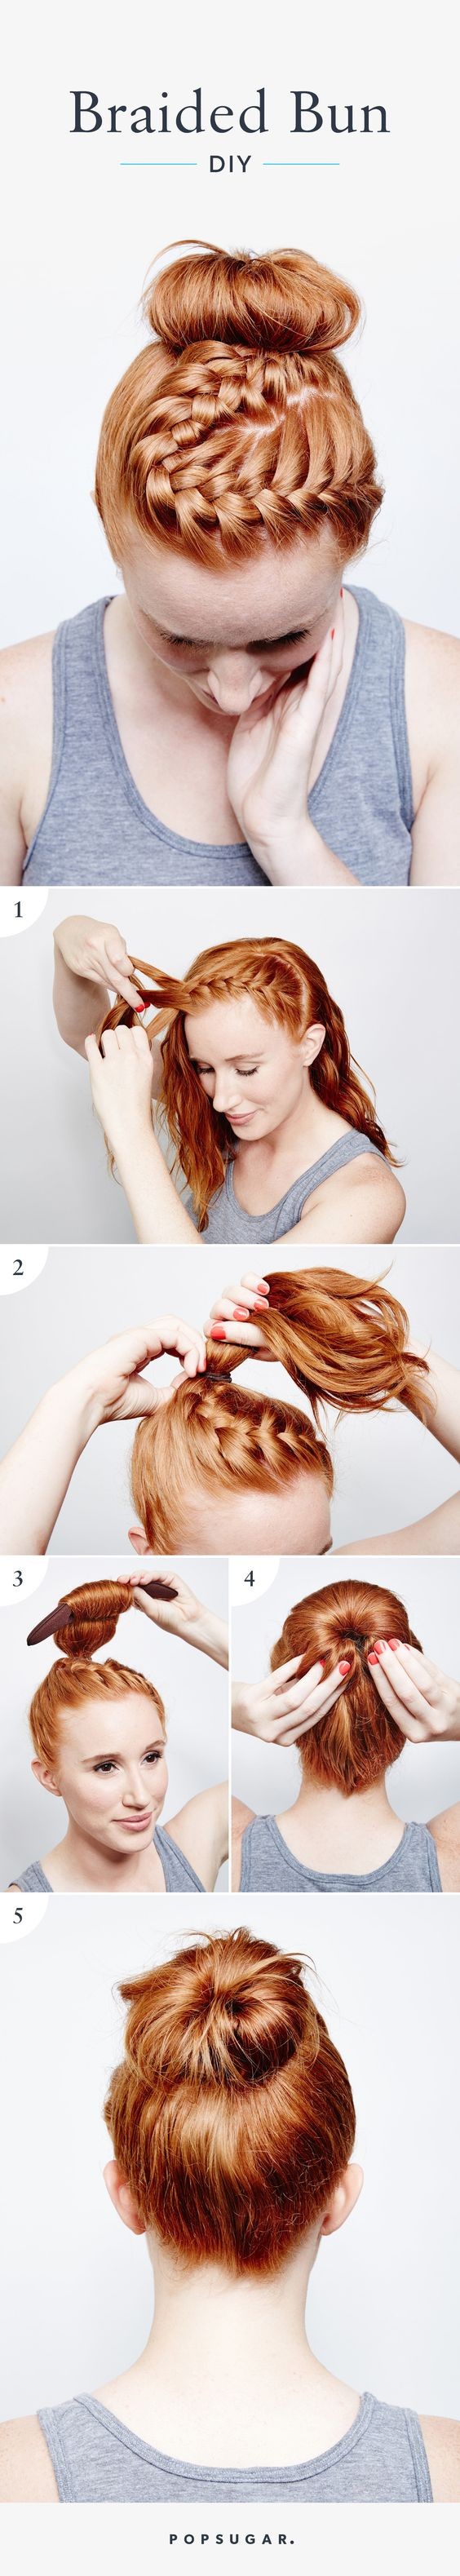 braided top bun for light hair over